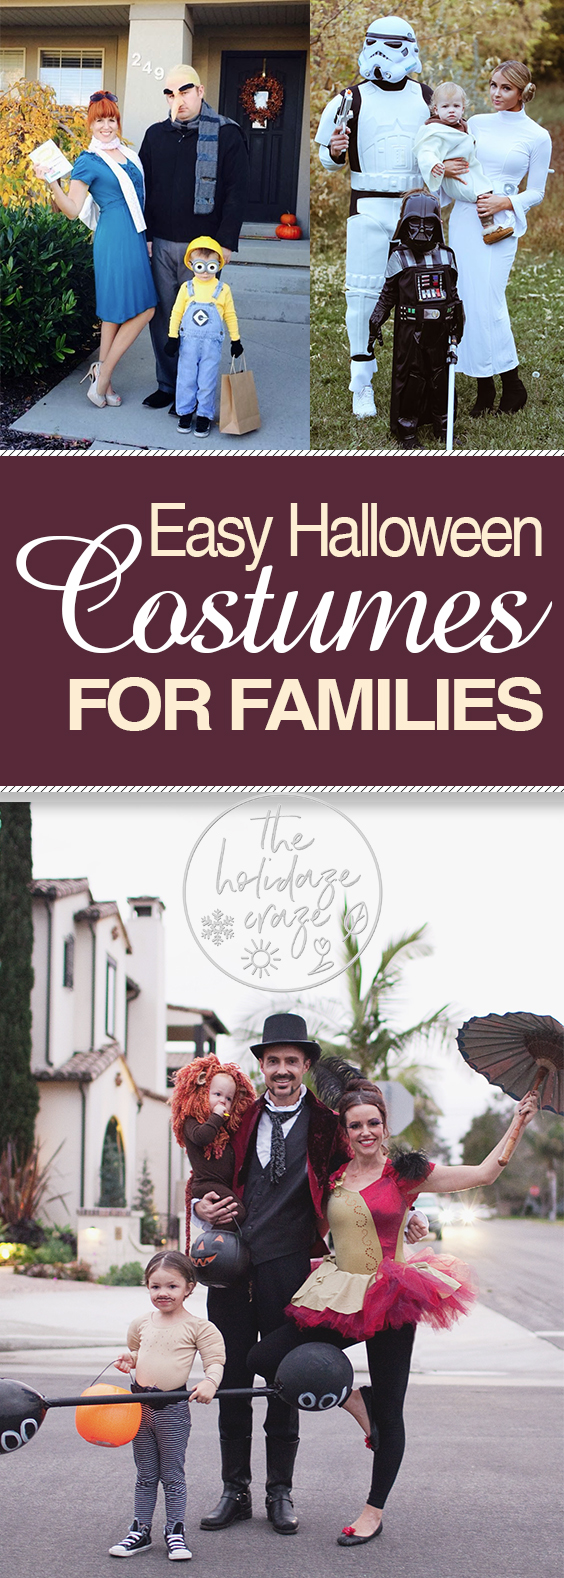 DIY Halloween, Halloween Costume Ideas, Halloween Costumes for Families, DIY Halloween Costumes, DIY Costumes for Families, Halloween Fun, Holiday Crafts, Halloween DIYs, Popular Pin #DIYHalloween #SewingProjects #HalloweenSewingProjects #HalloweenCostume #DIYHalloweenCostume